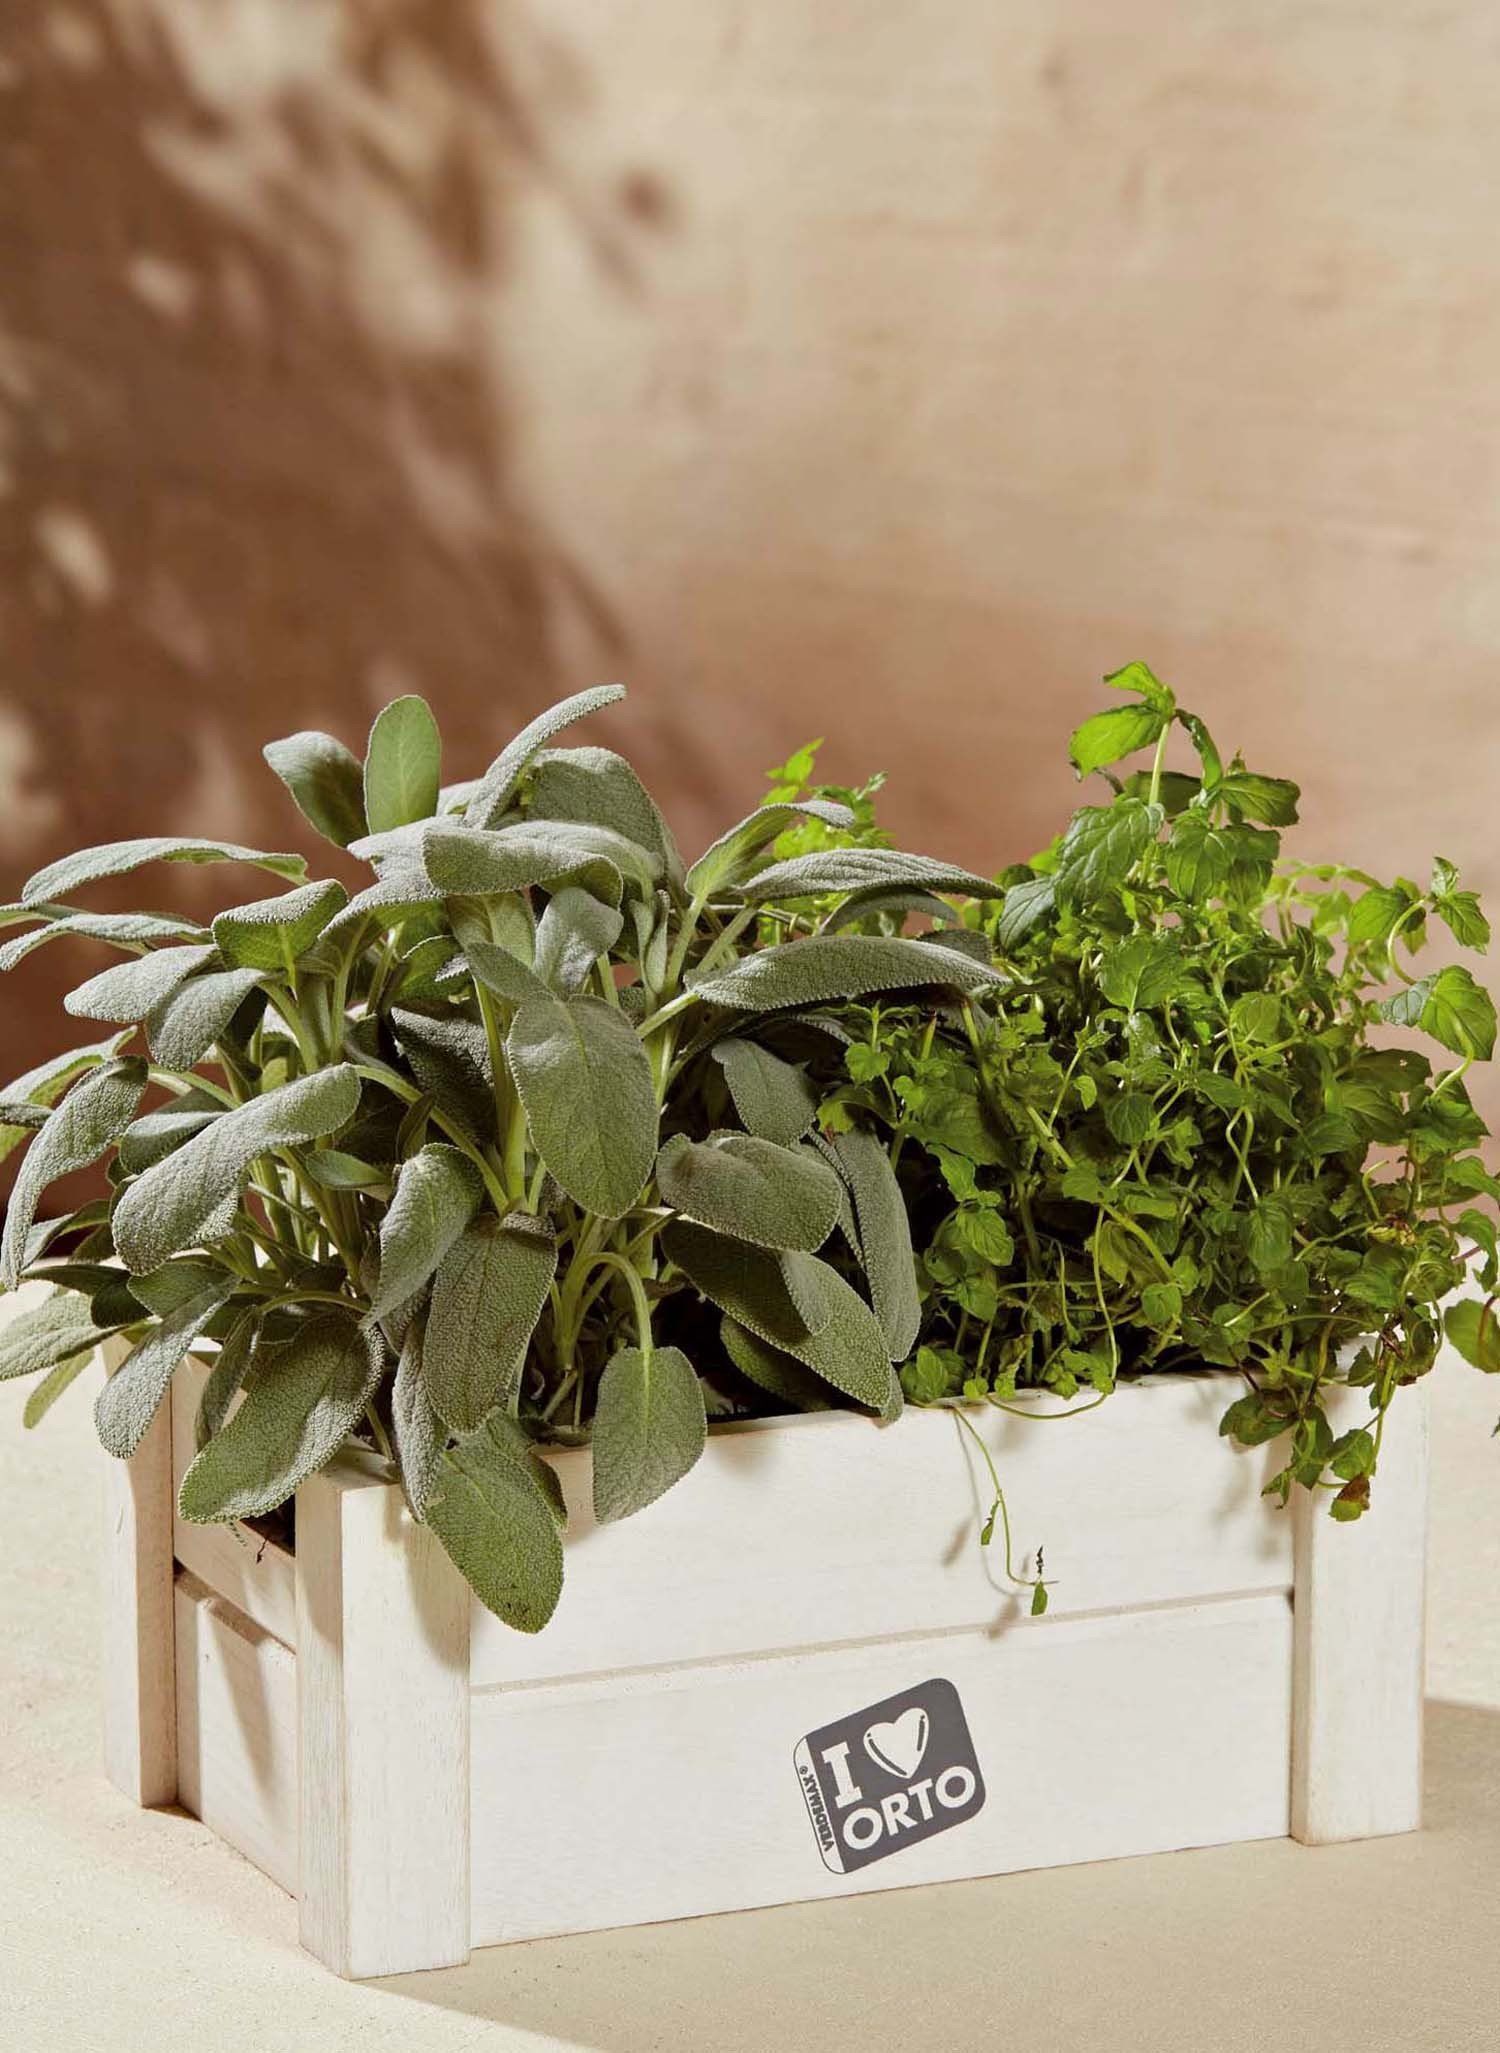 Box-Orto,Salvia/Menta